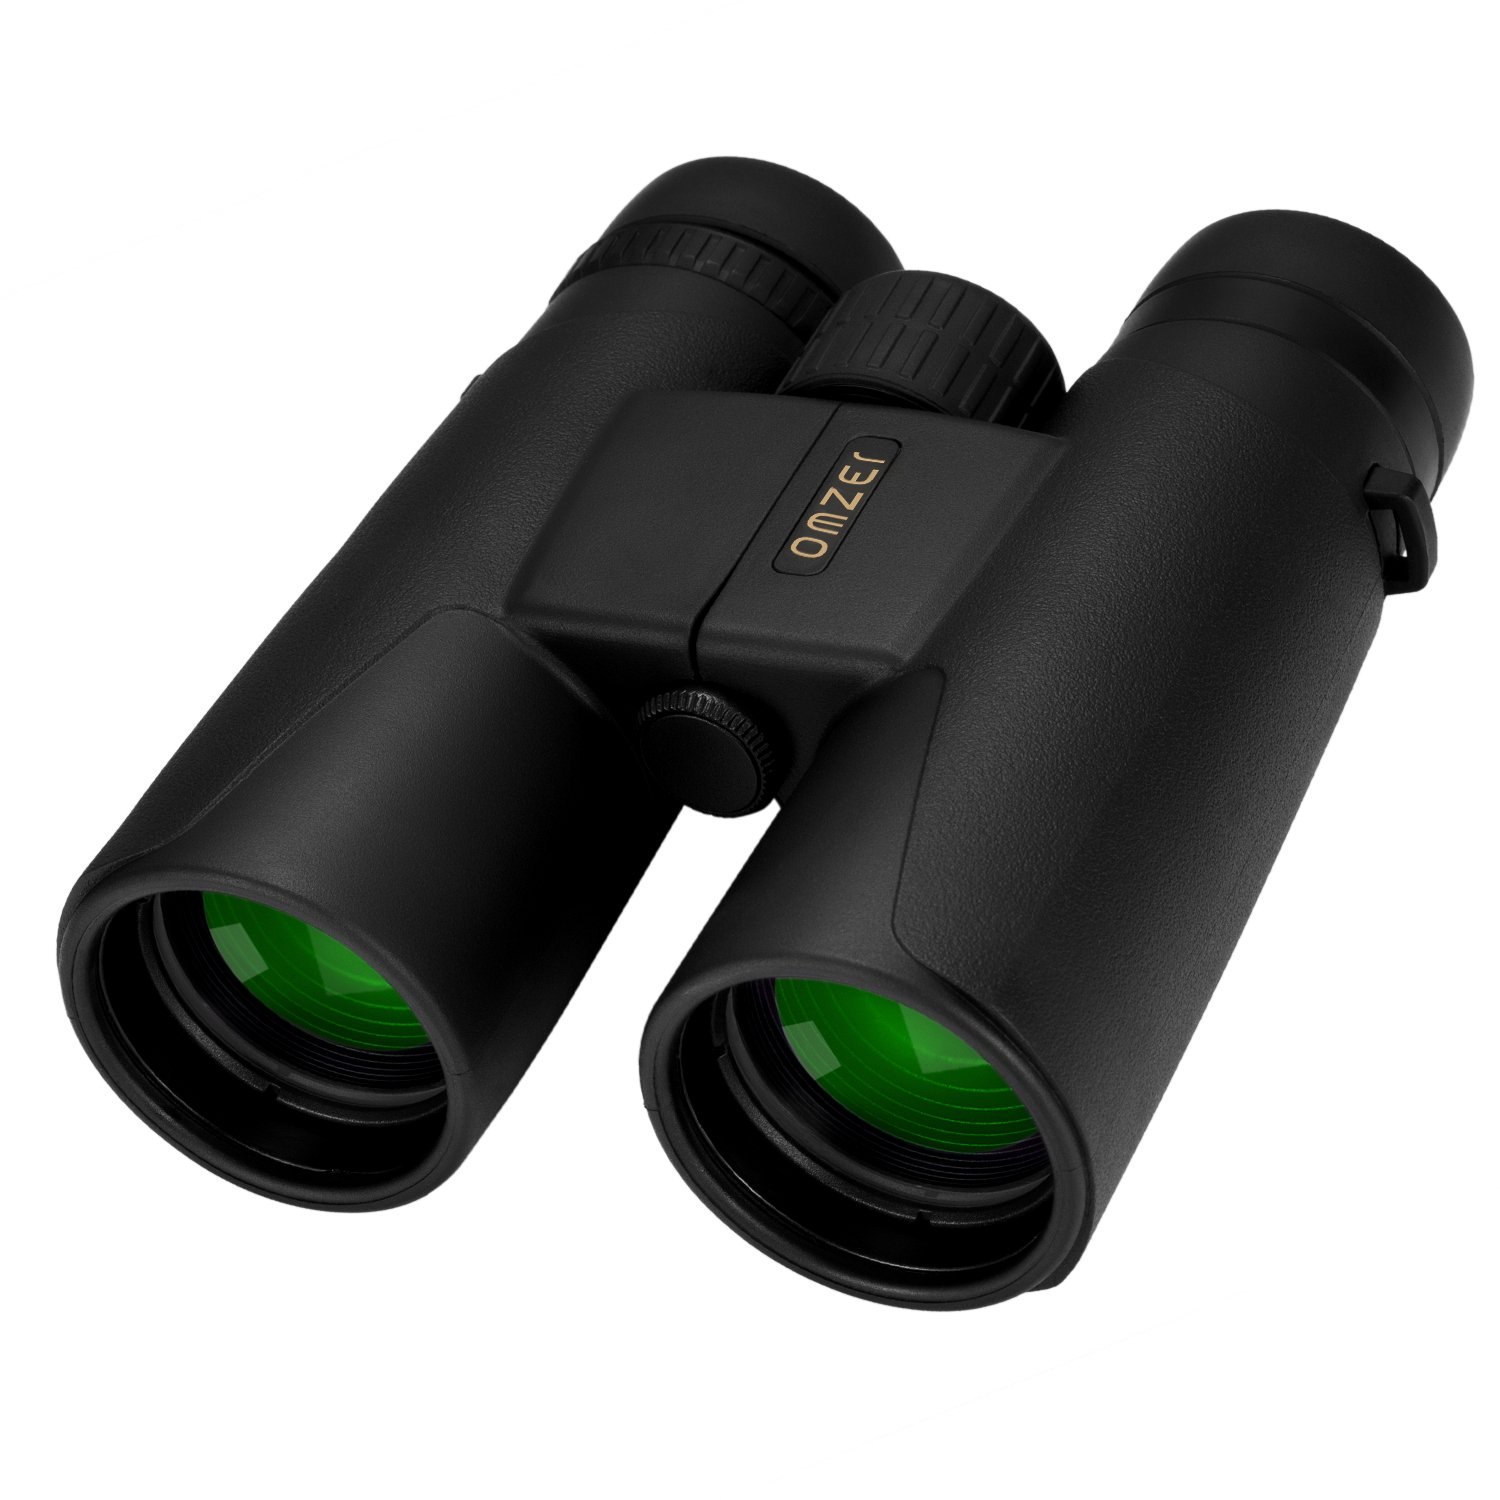 OMZER 10x42 High-powered Compact HD Binoculars With BAK4 FMC Lens, Waterproof, Fogproof, Shockproof Binocular With Weak Light Night Vision For Adults Bird Watching, Hiking, Hunting, Camping, Concerts